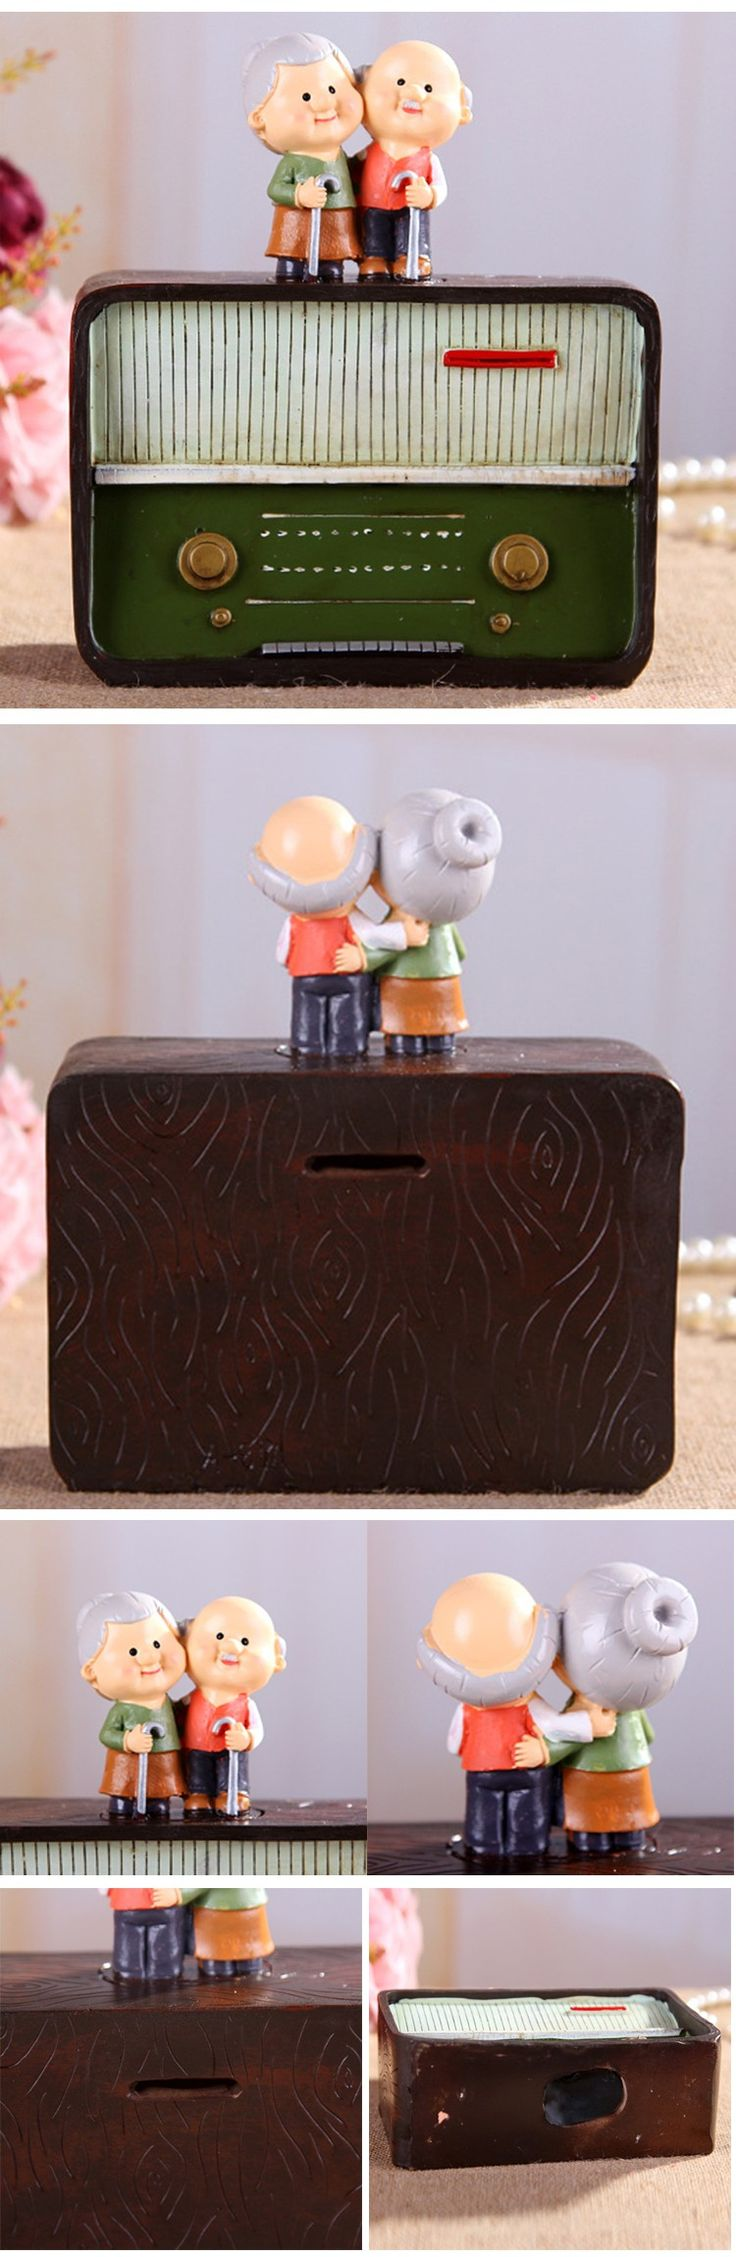 Handmade retro Radio Moneybox ornaments save cans the piggy bank/Resin craft Valentine's Day gift graduation pictures-in Money Boxes from Home & Garden on Aliexpress.com | Alibaba Group